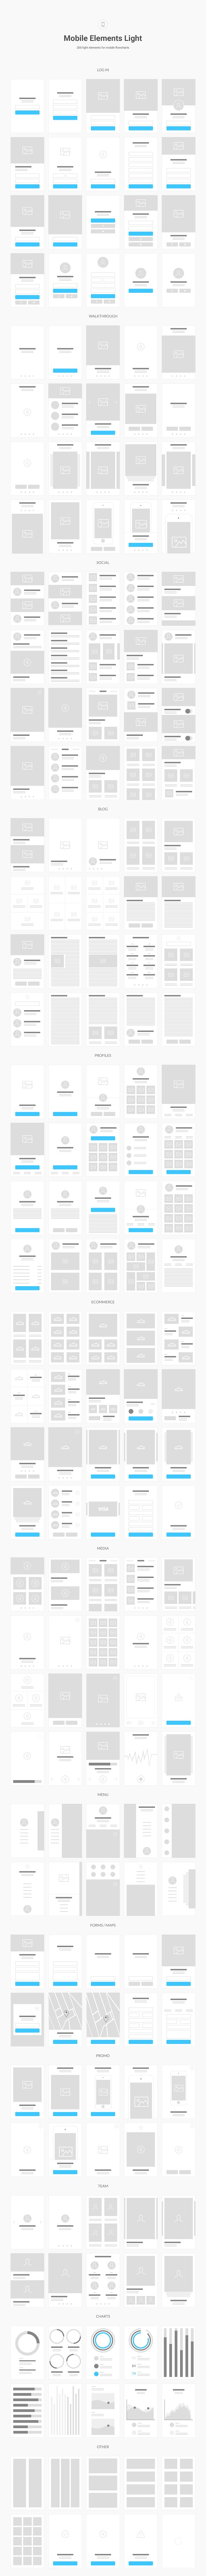 Filedopamine flow chartjpg wikipedia swedish toilet diagram 100 media flowchart template download 10 ready to go mobile elements light media flowchart pronofoot35fo Image collections